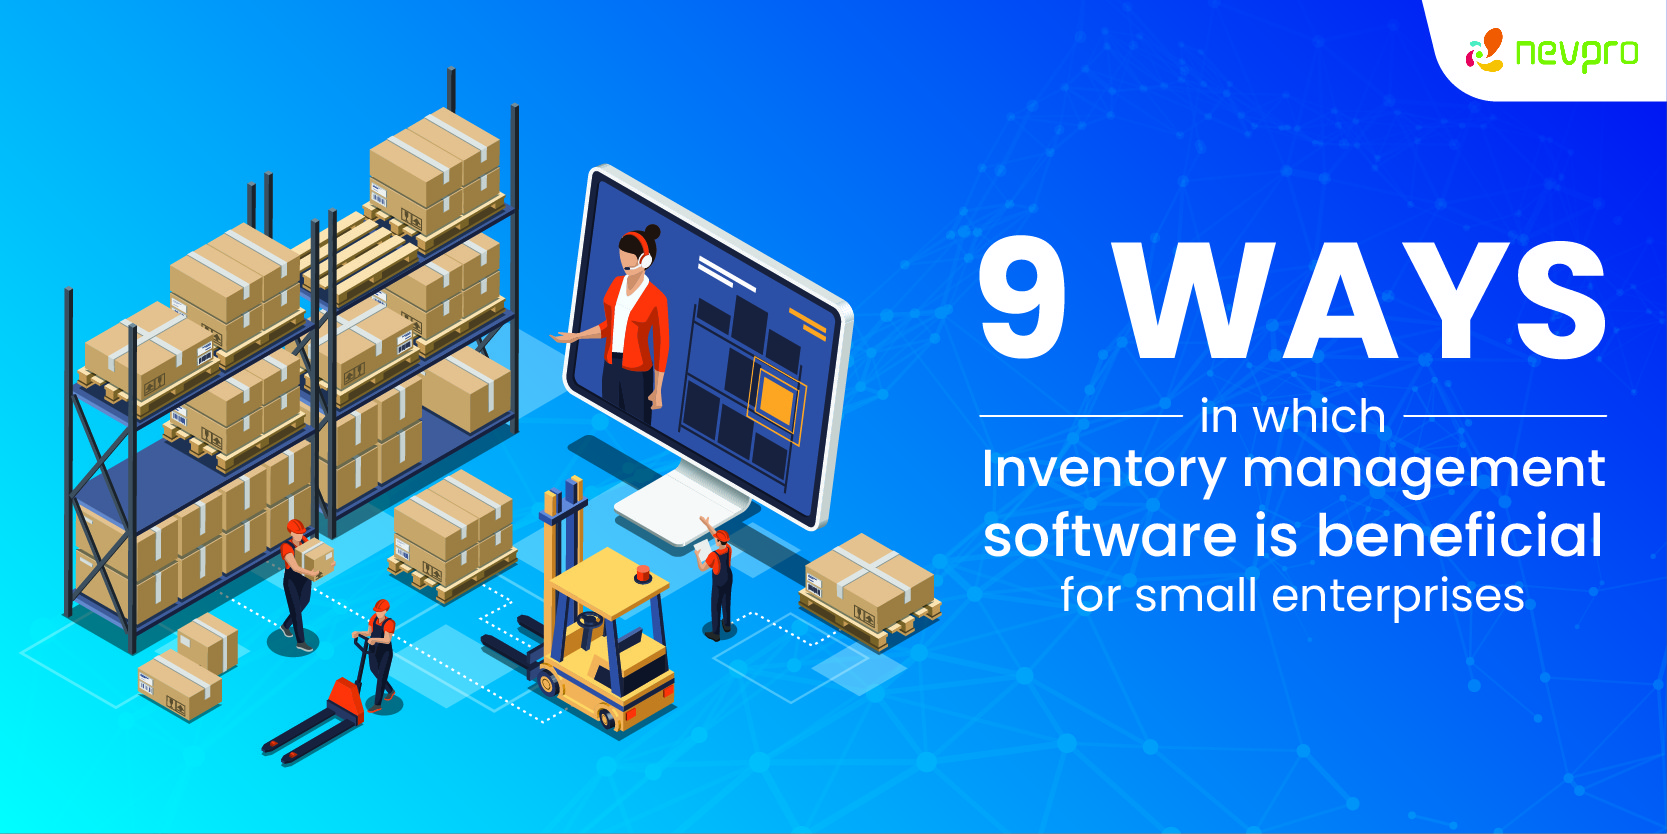 9 ways in which Inventory Management Software is beneficial for Small Enterprises